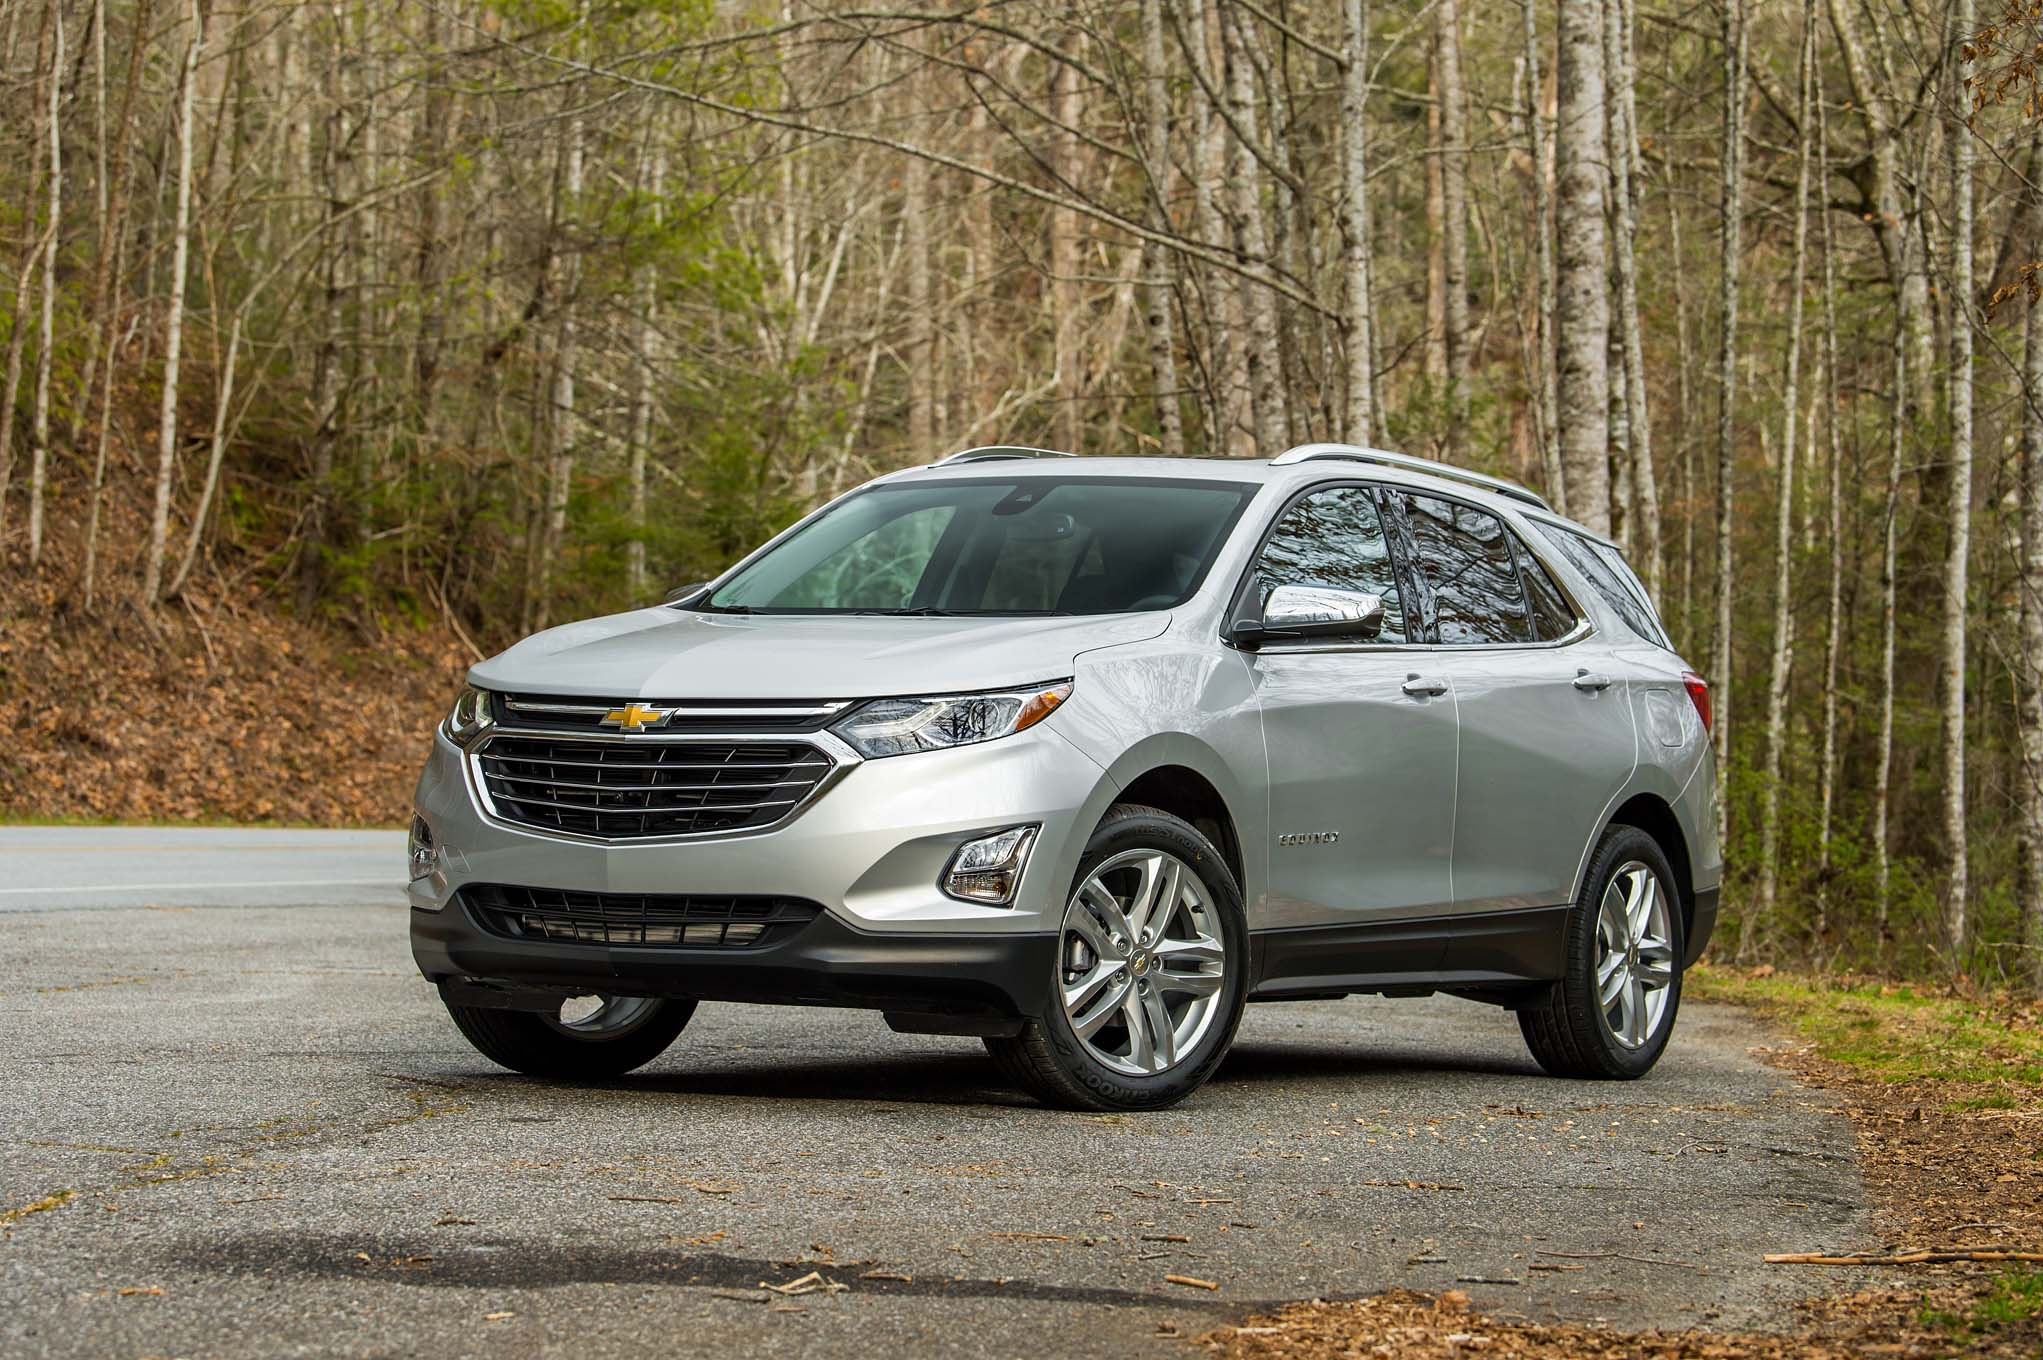 chevrolet equinox diesel claims 577 miles of range. Black Bedroom Furniture Sets. Home Design Ideas